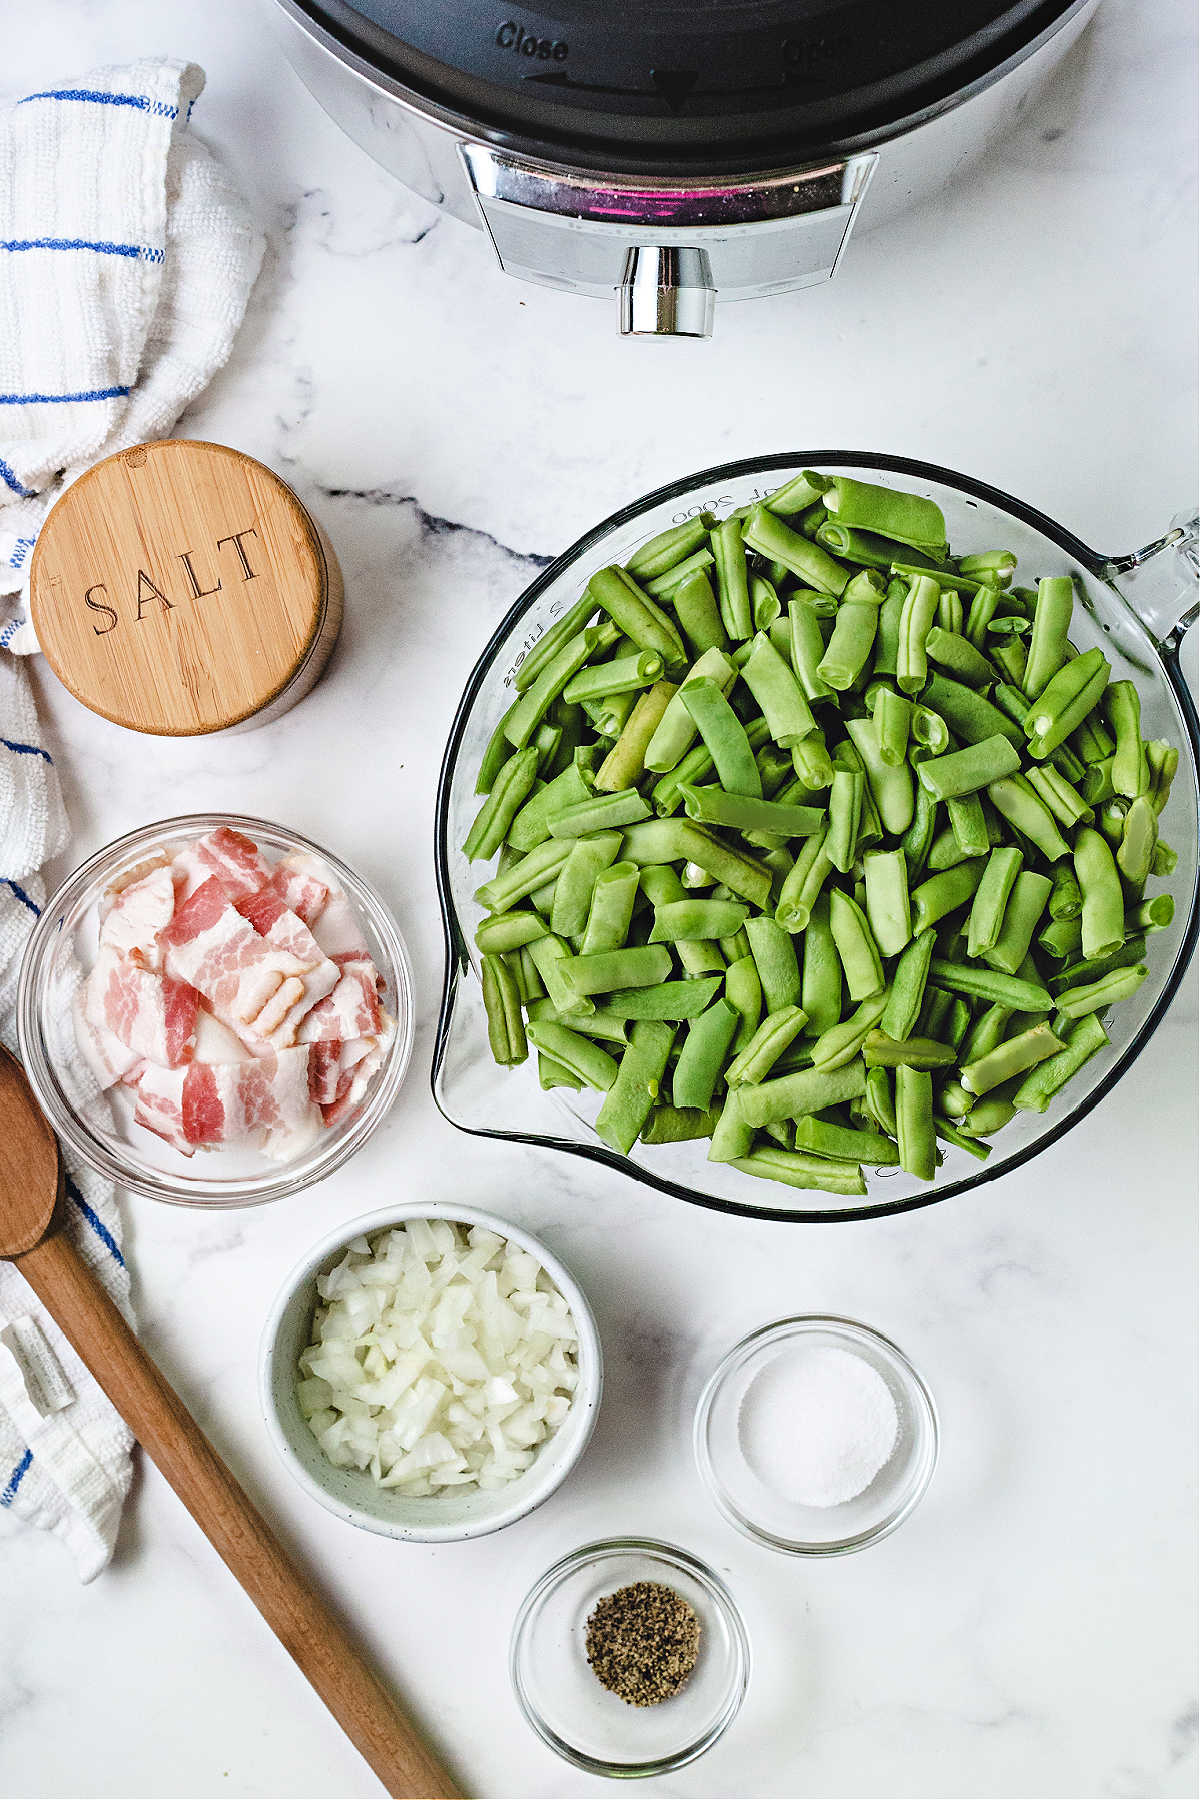 ingredients for cooking green beans in an instant pot on a kitchen counter: fresh green beans, bacon, diced onion, salt, pepper, and sugar.